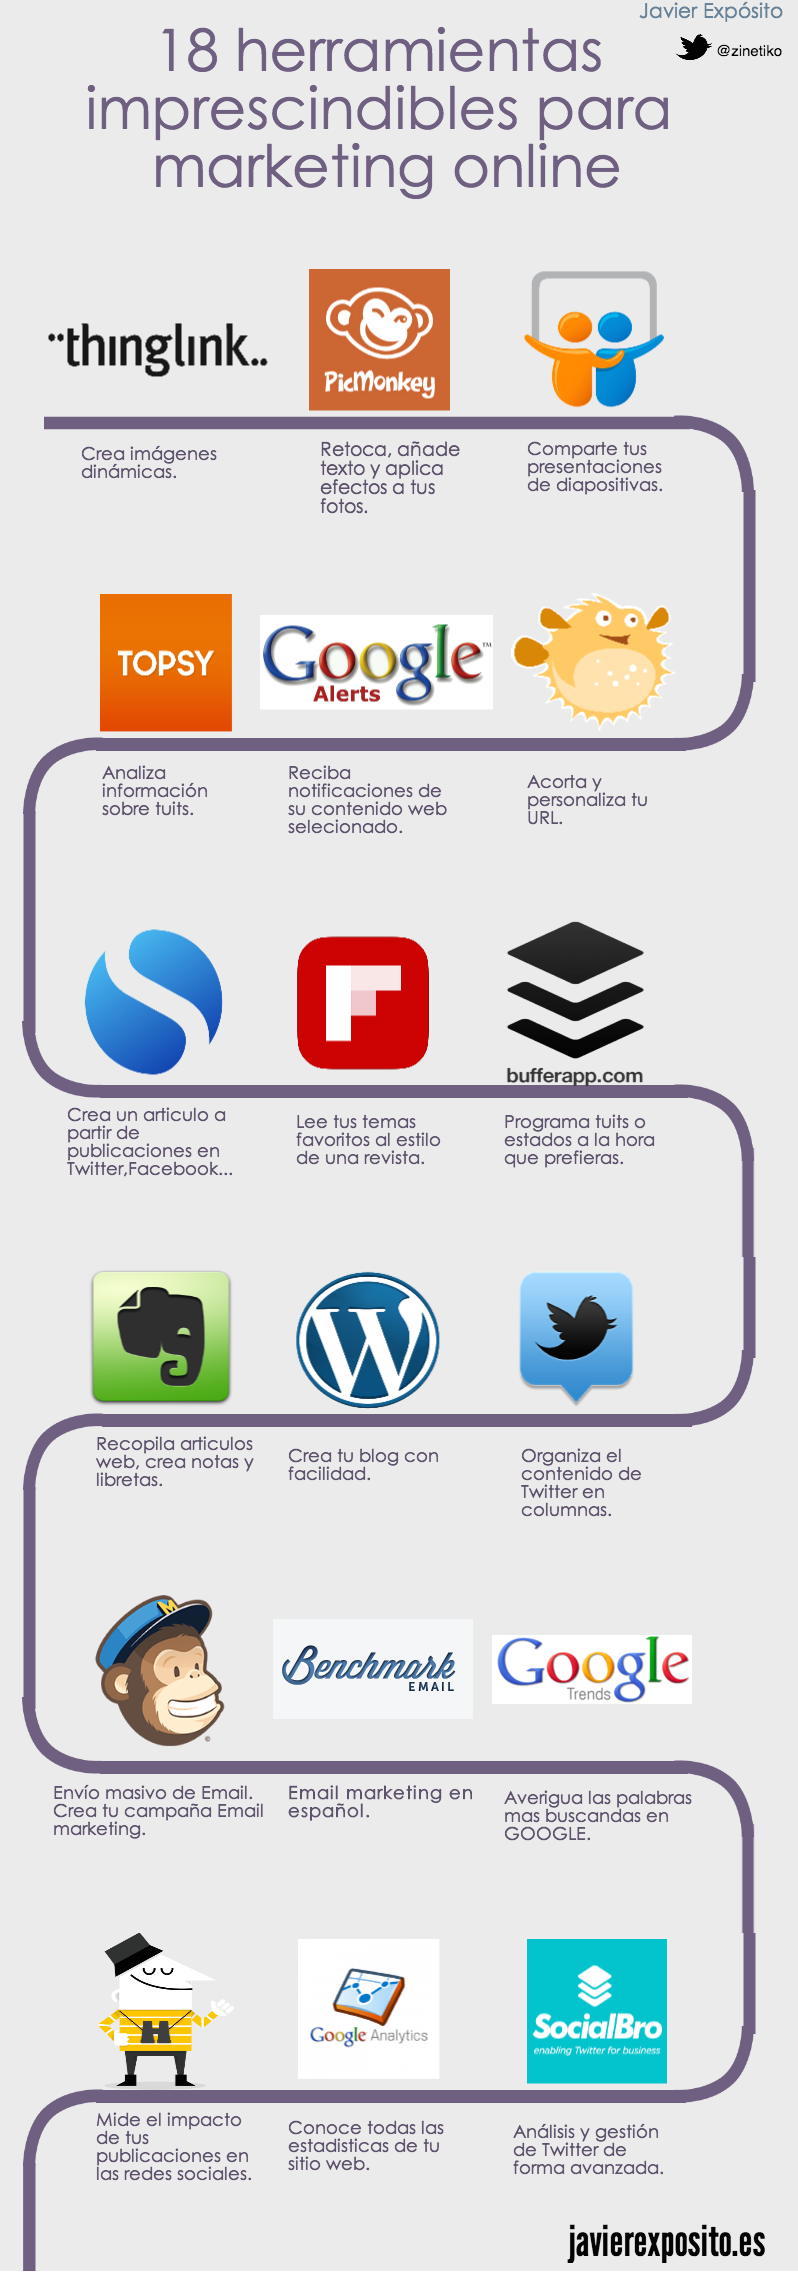 18 herramientas imprescindibles para Marketing Online